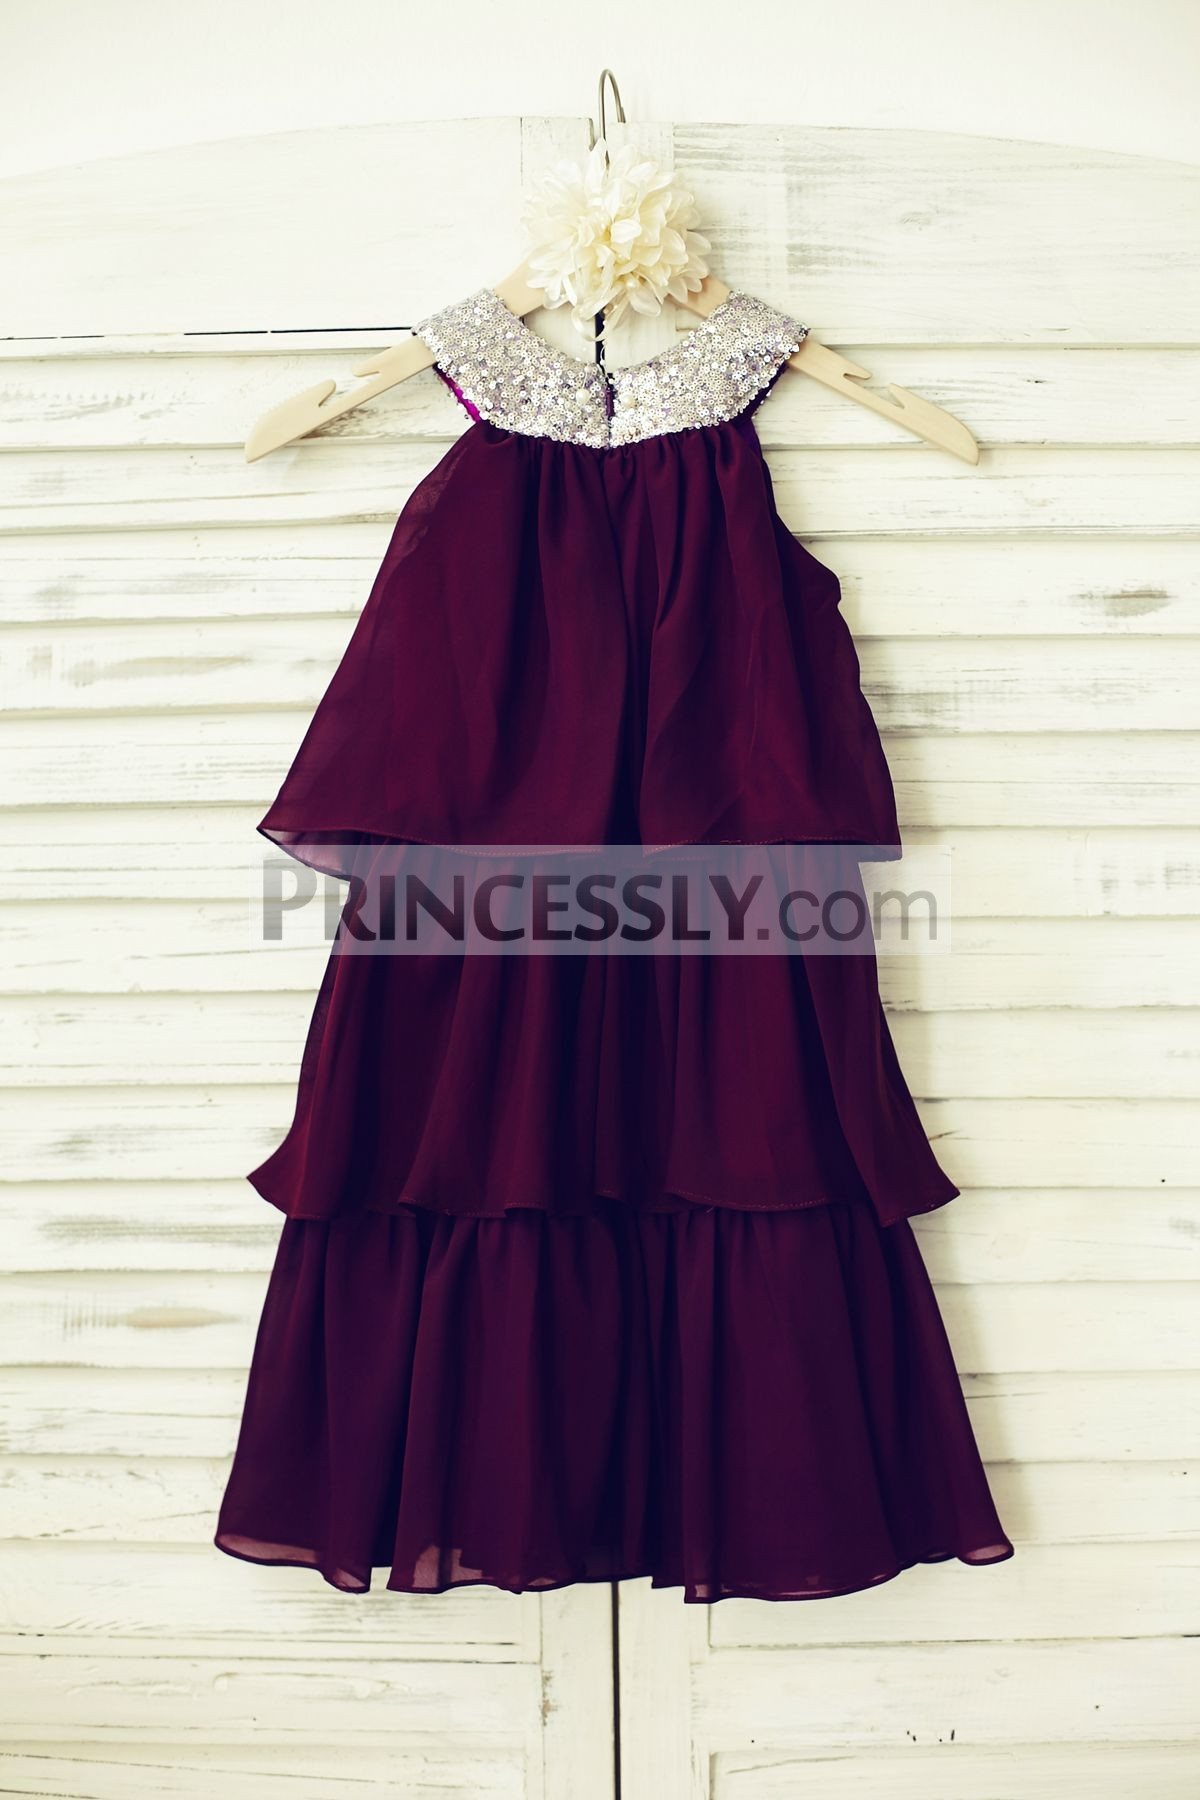 Round Neckline Sleeveless Three Layers Cupcake Wedding Baby Girl Dress